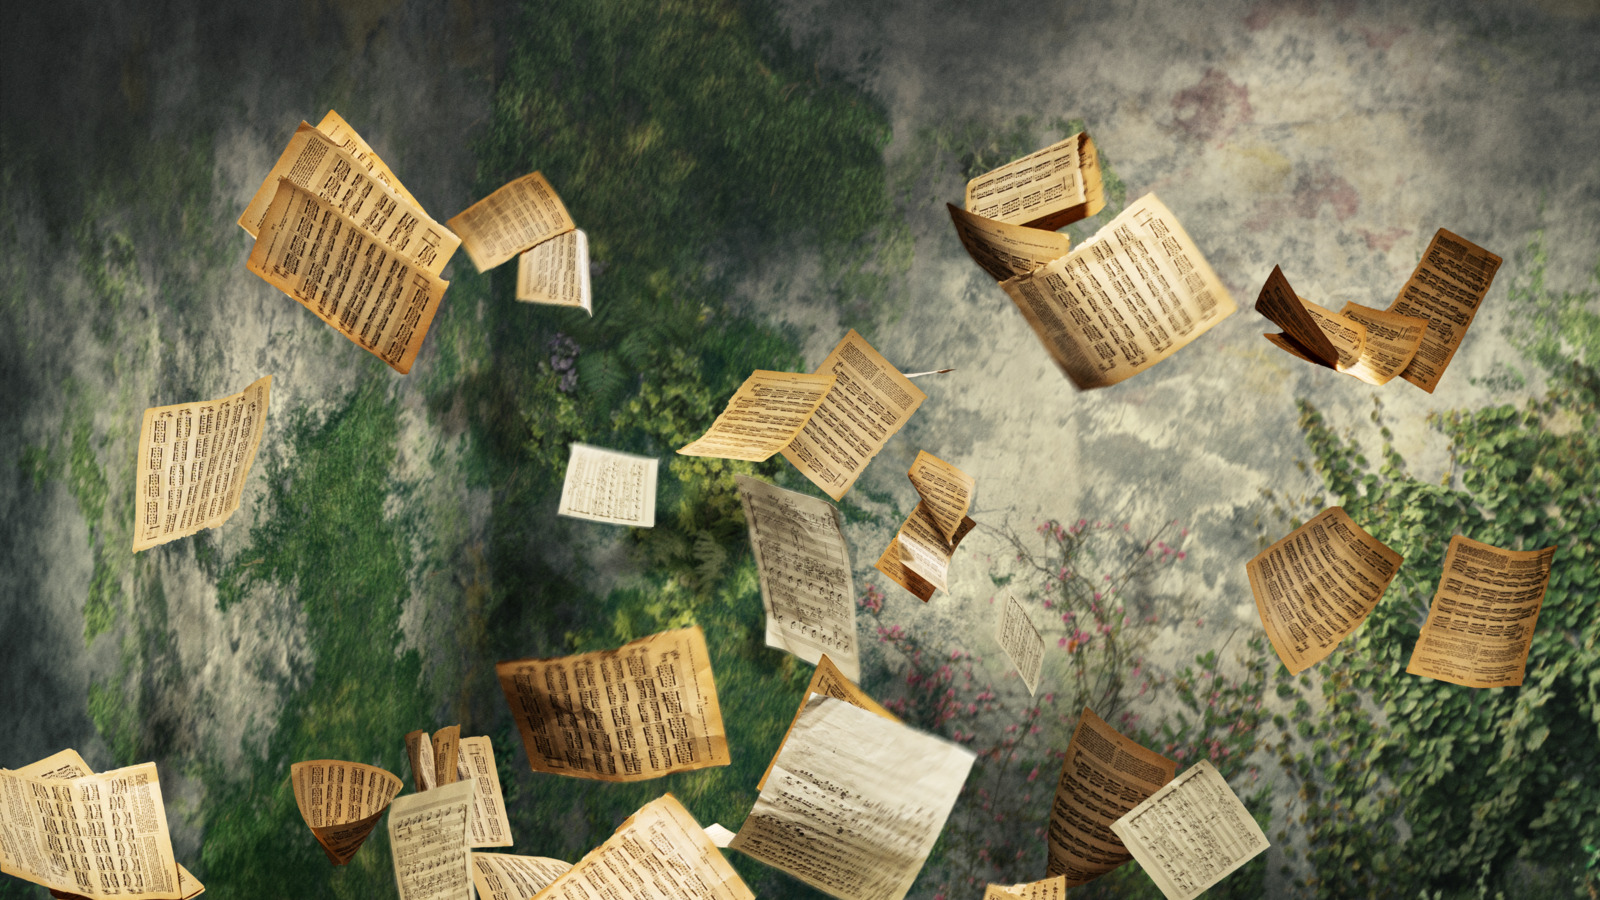 Sheets of musical notes floating in the air against a green background.